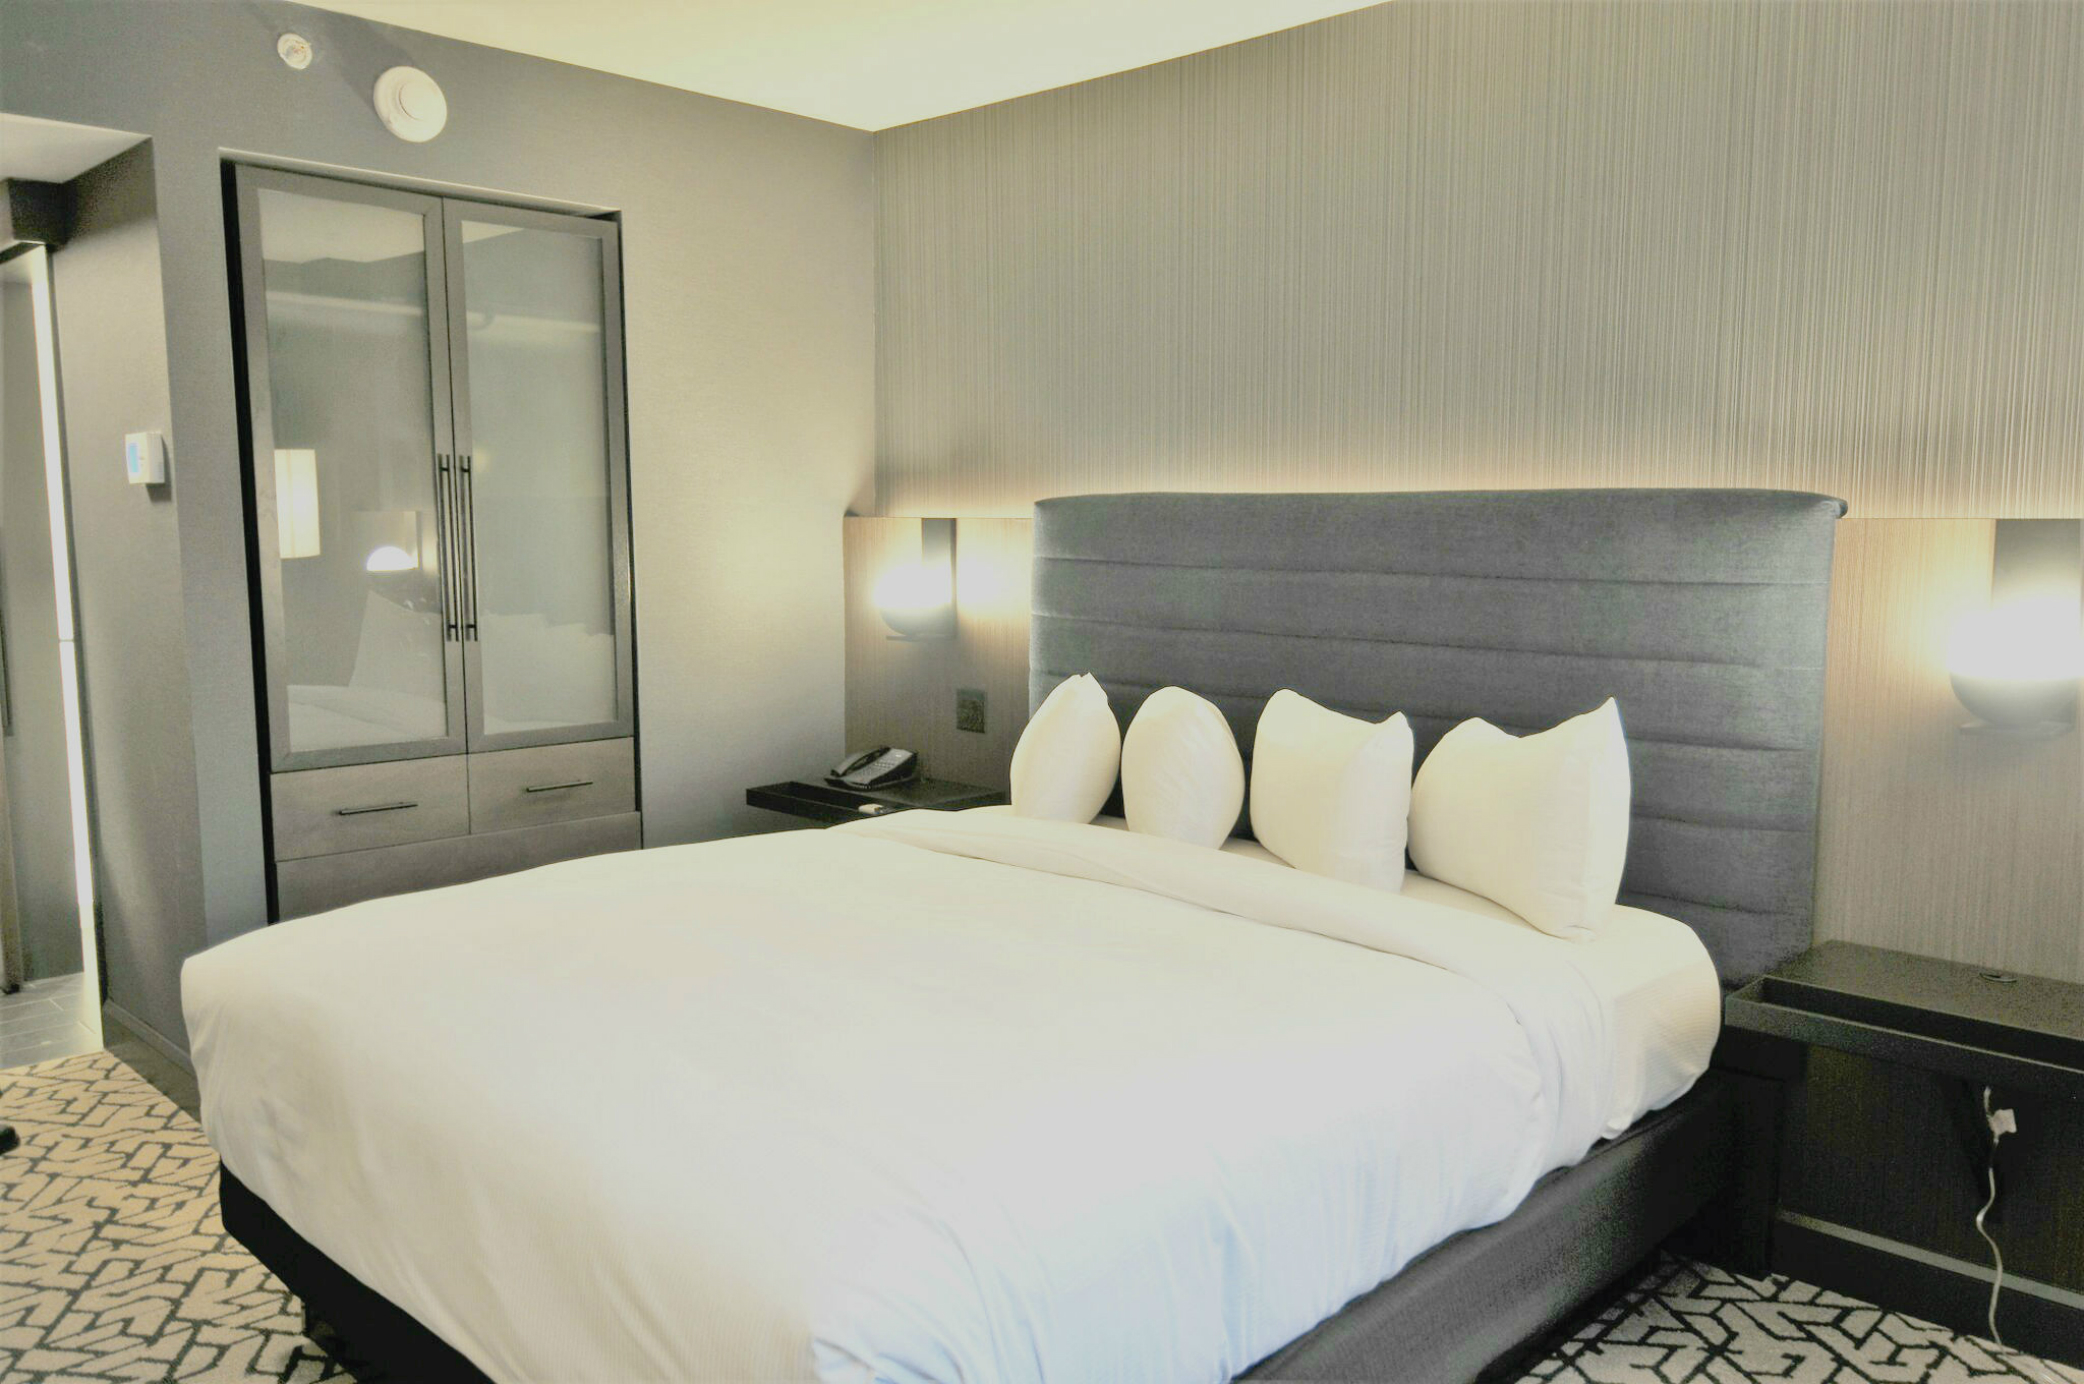 Renovated guest bedroom at The Washington Hilton